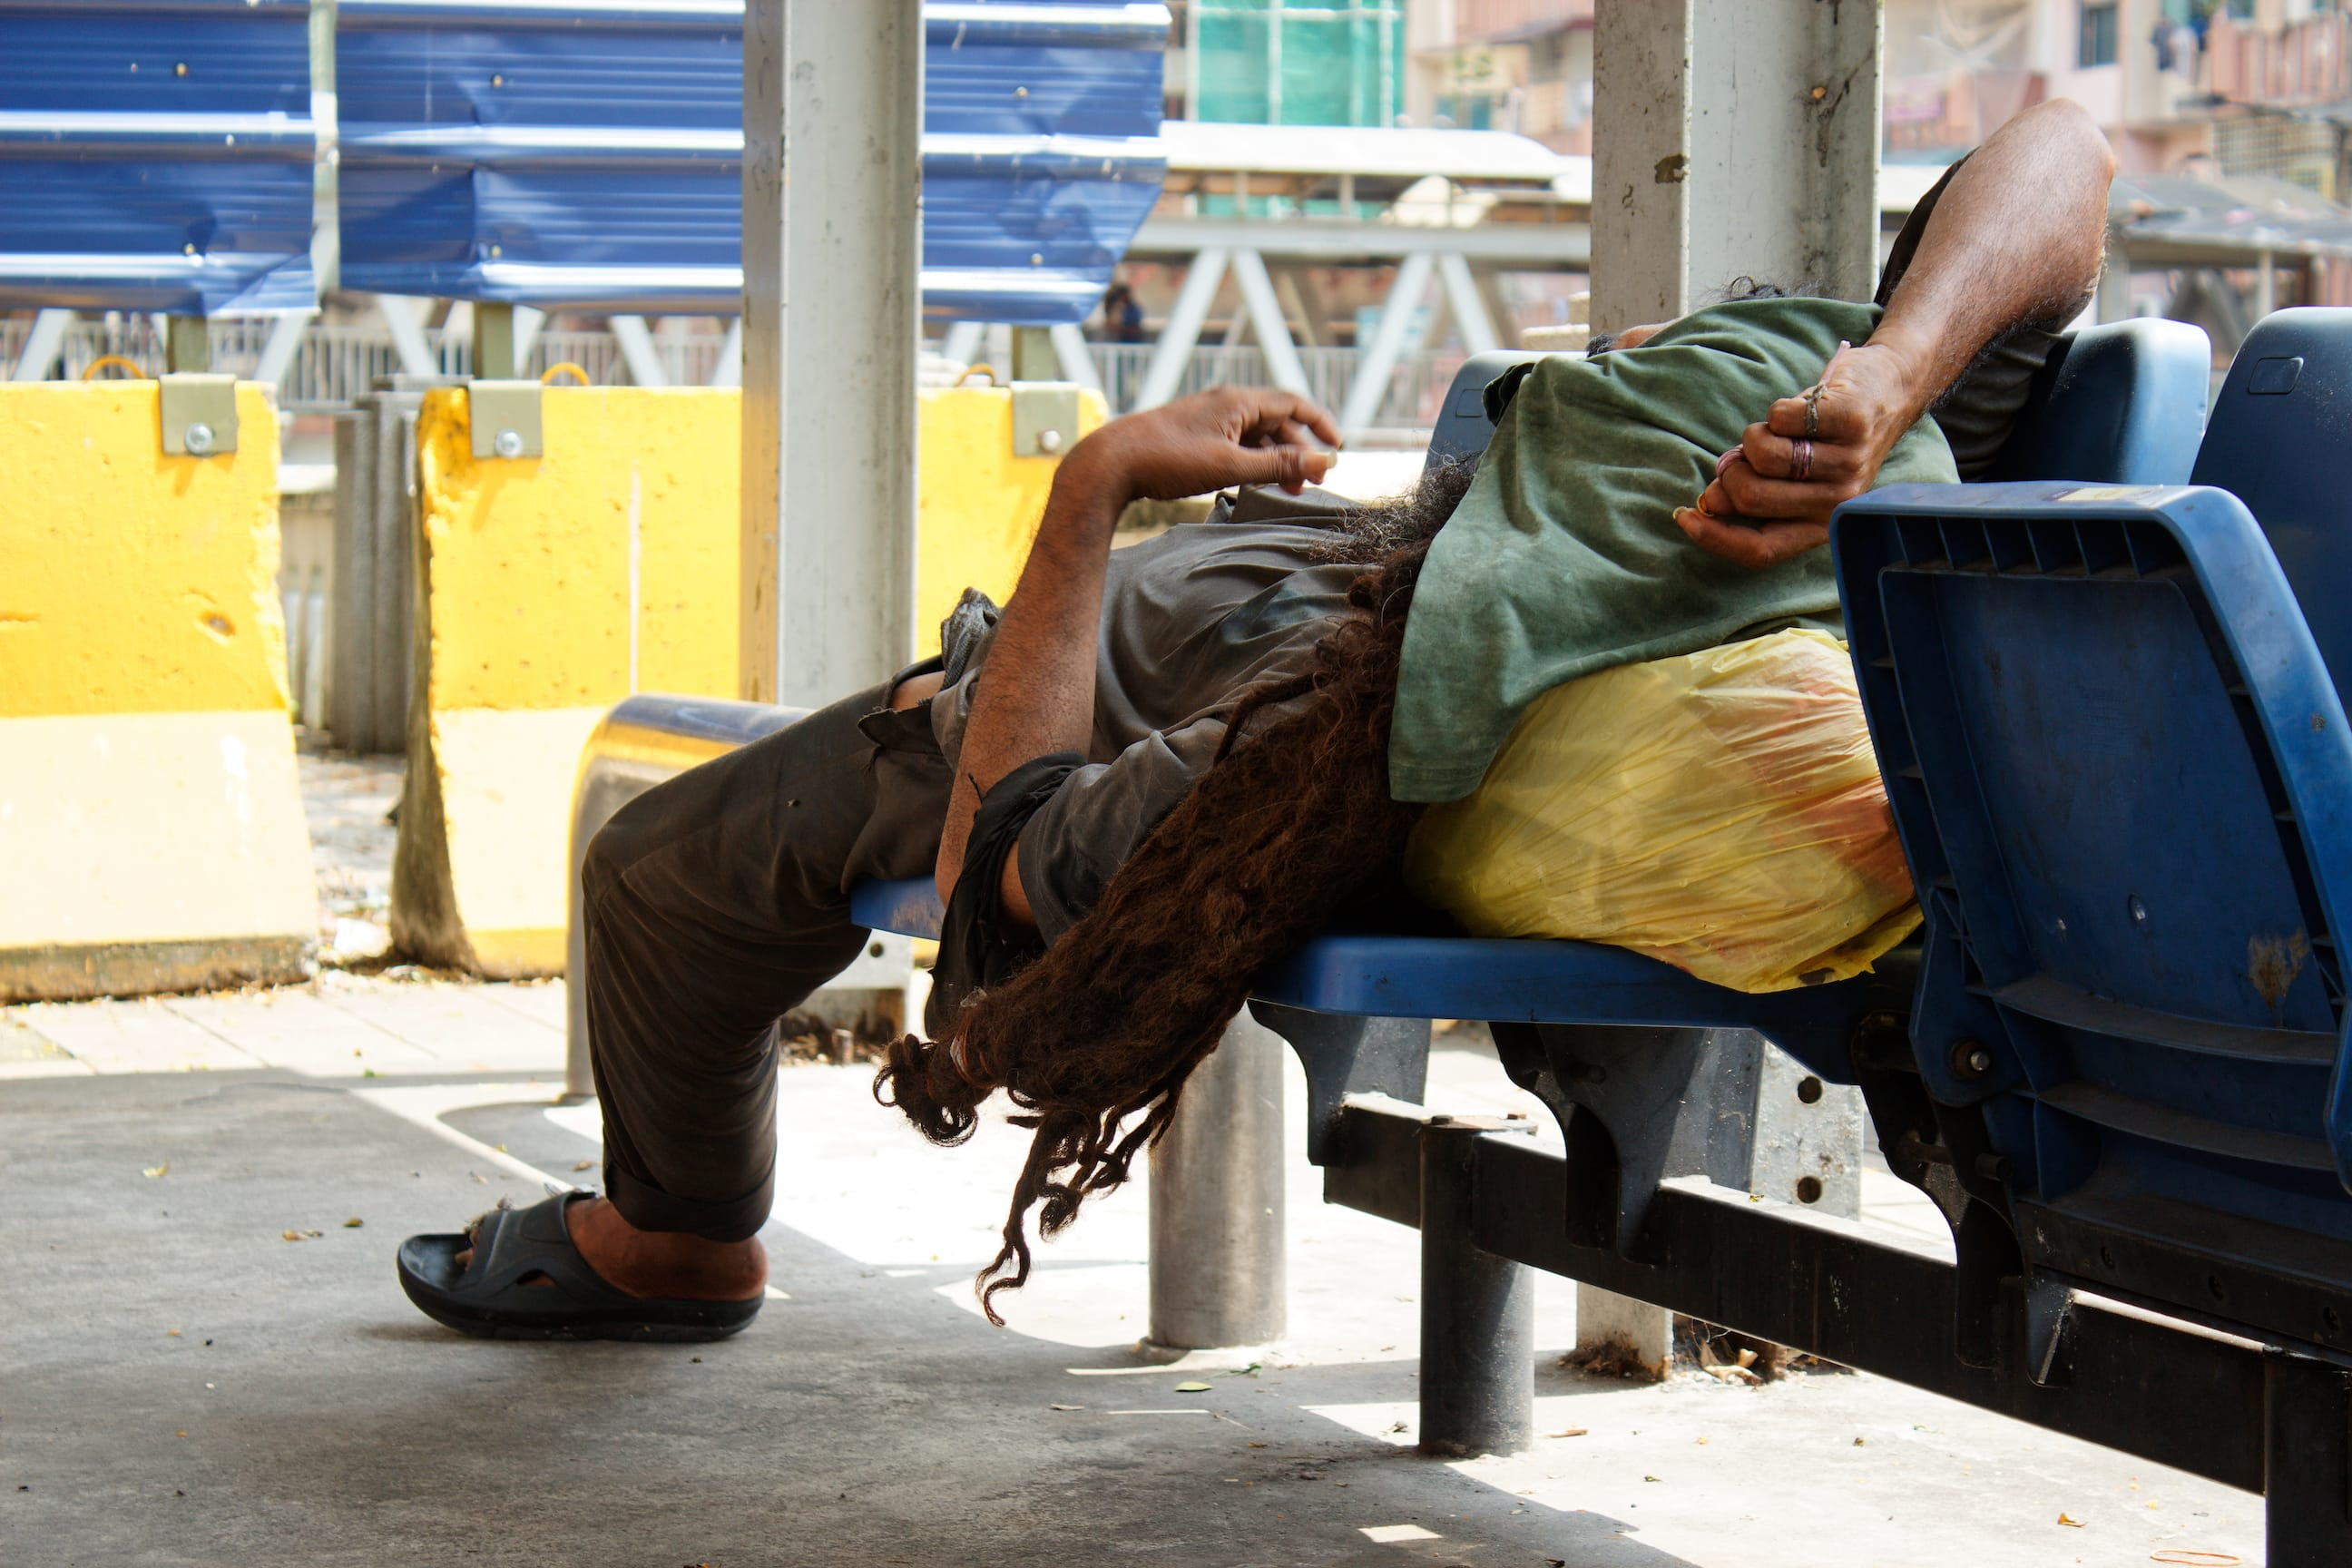 A Homeless Man Resting in Kuala Lumpur